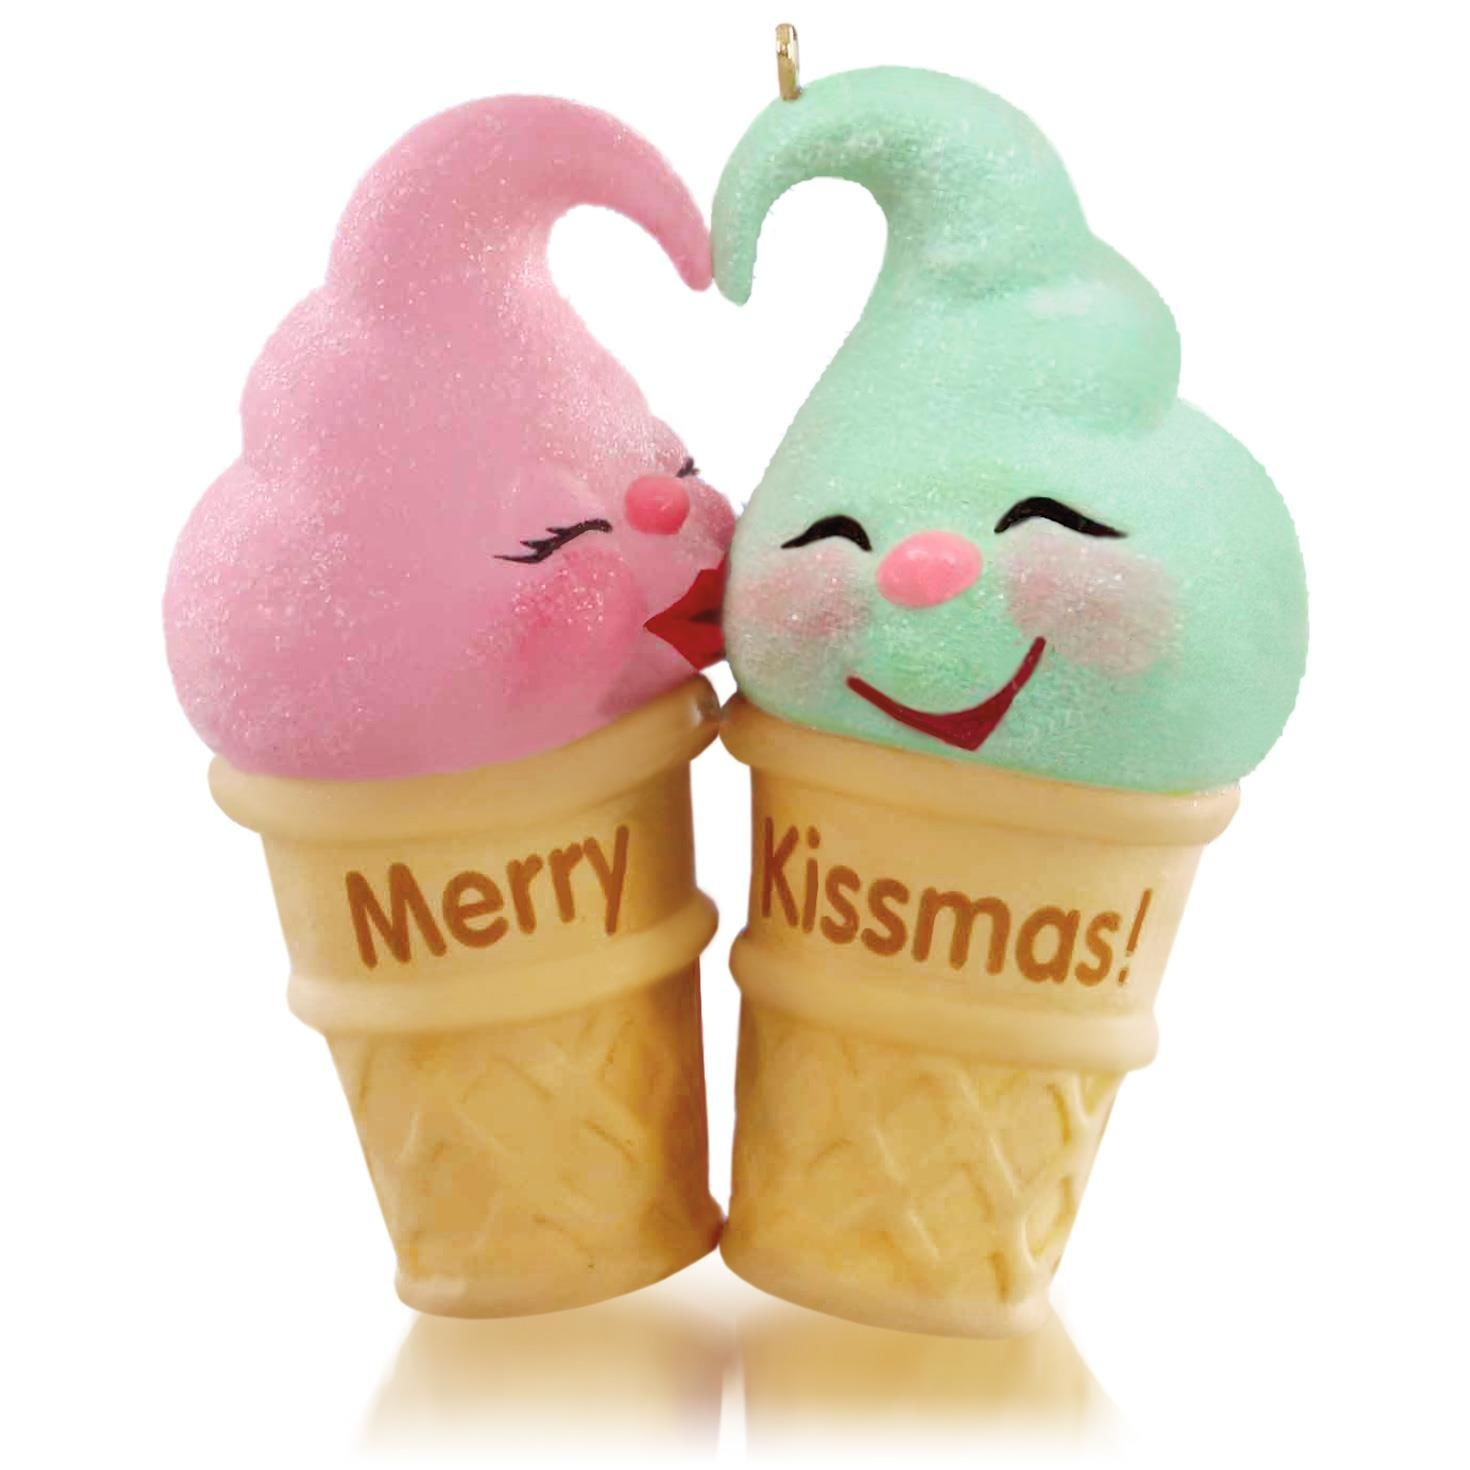 Sweet Love Ice Cream Kisses Ornament Available October 2015 $1495